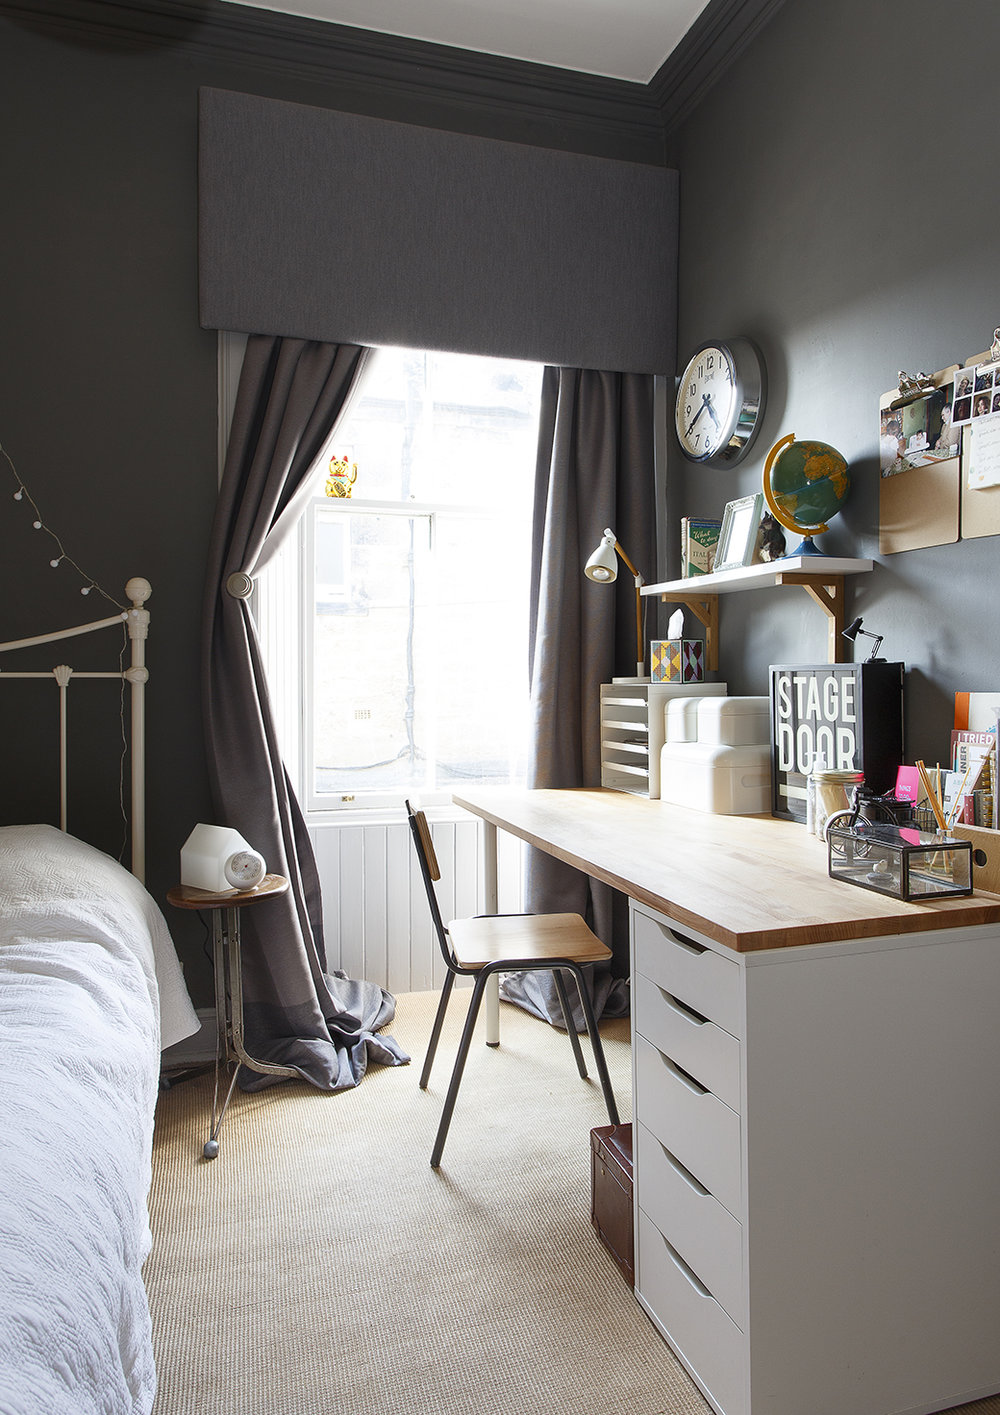 Tour a Bright Eclectic Family Home in Scotland